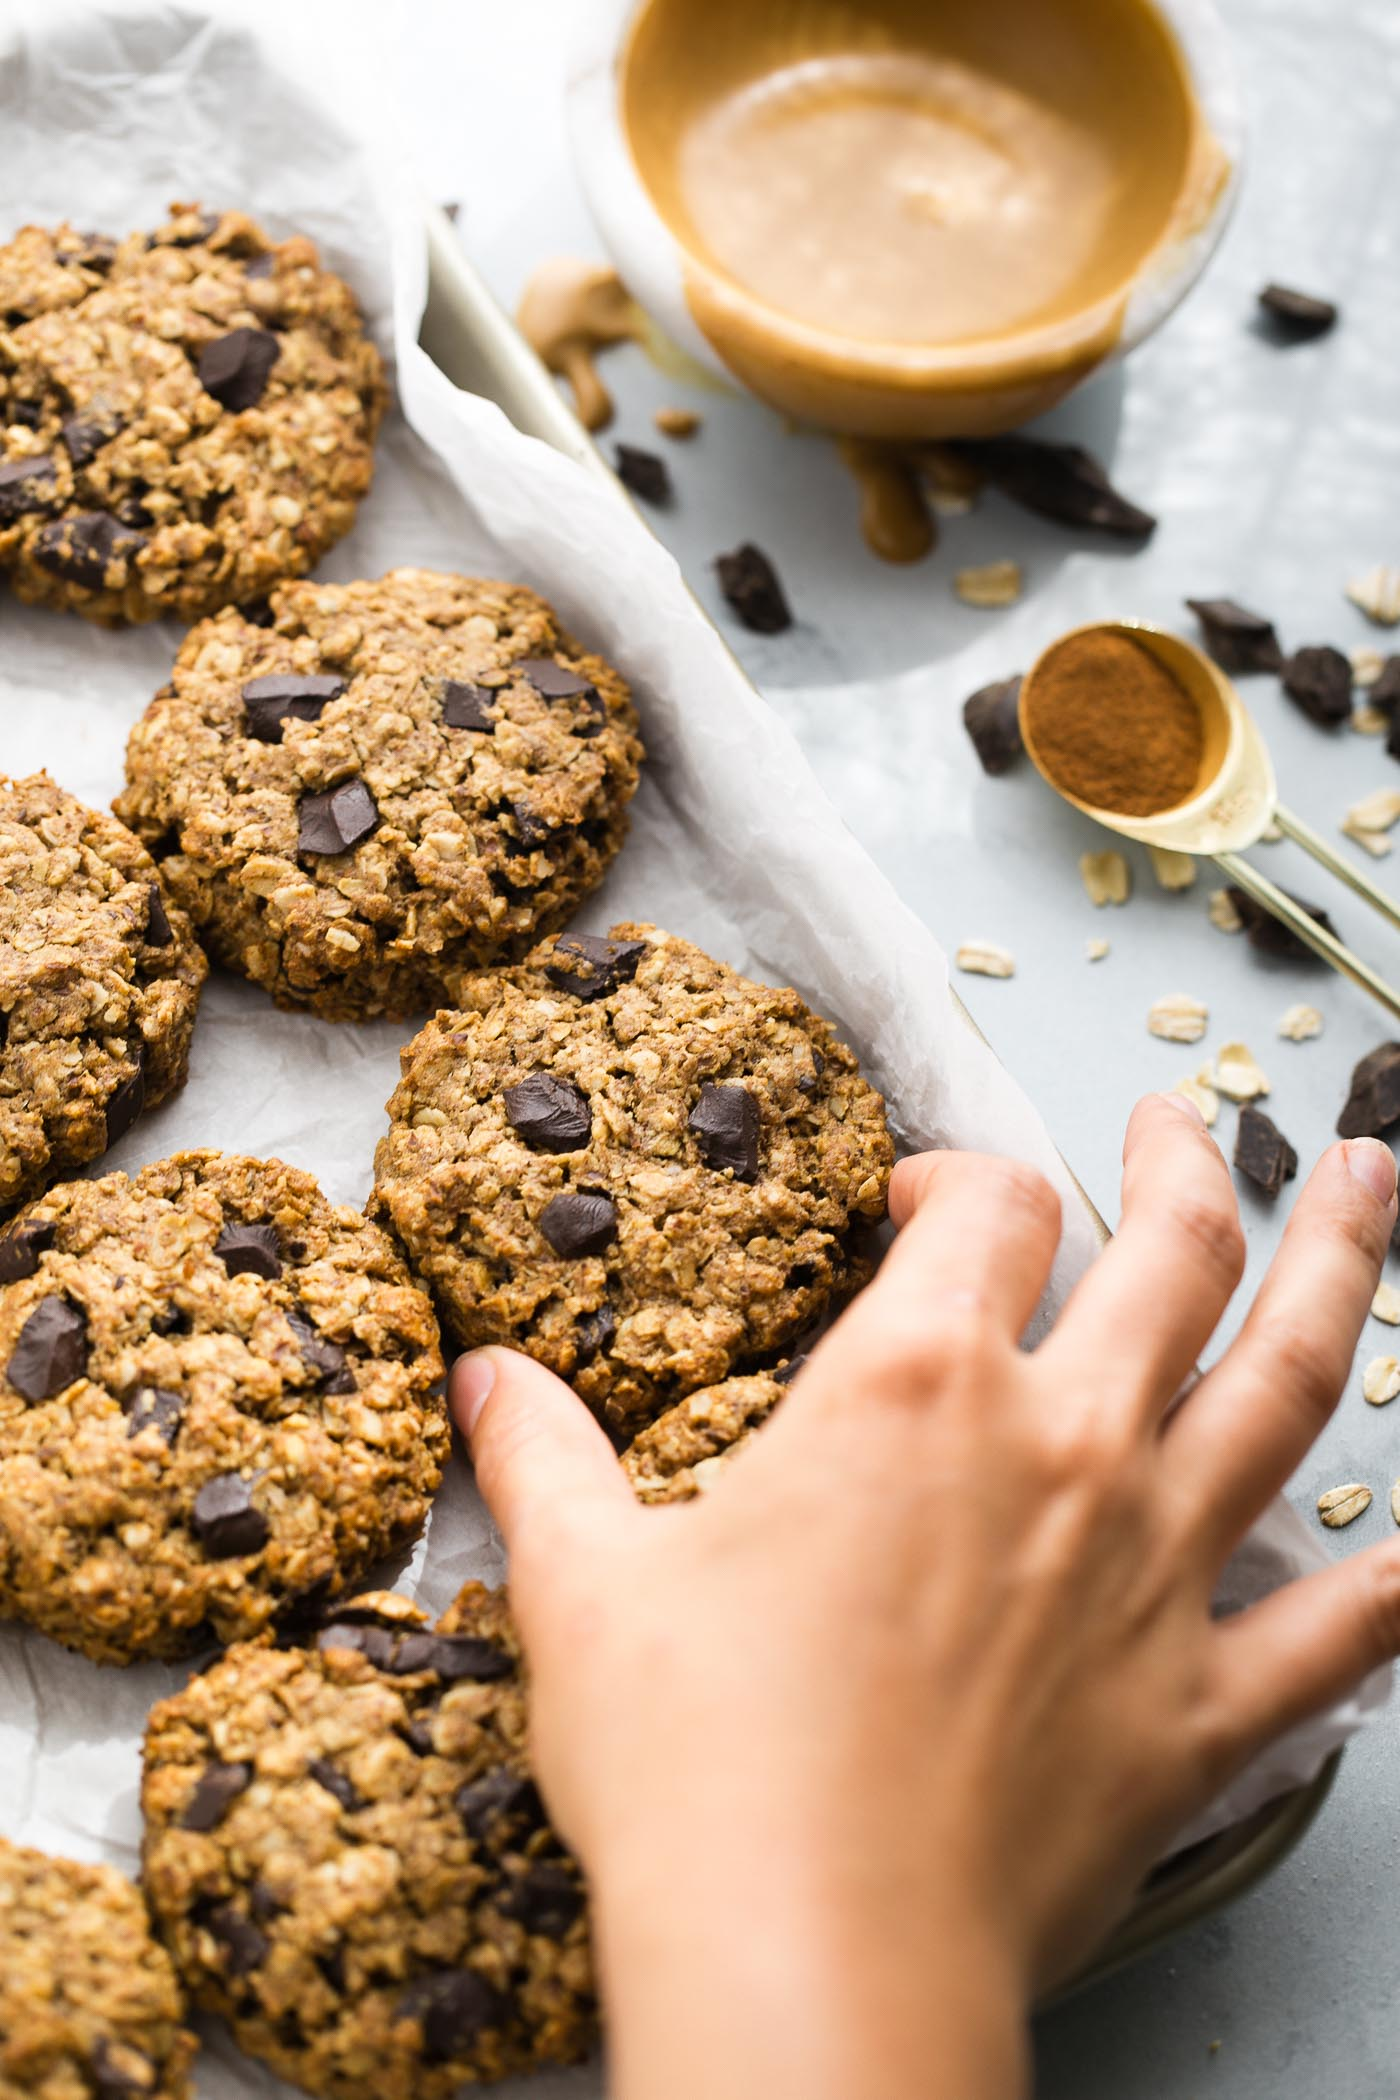 healthy peanut butter breakfast cookies loaded with oats, flax, & dark chocolate chunks! these peanut butter breakfast cookies are the best way to start any day - especially when you dunk 'em into a cup of coffee! #peanutbutter #healthybreakfastrecipe #mealpreprecipe #breakfastcookies #playswellwithbutter